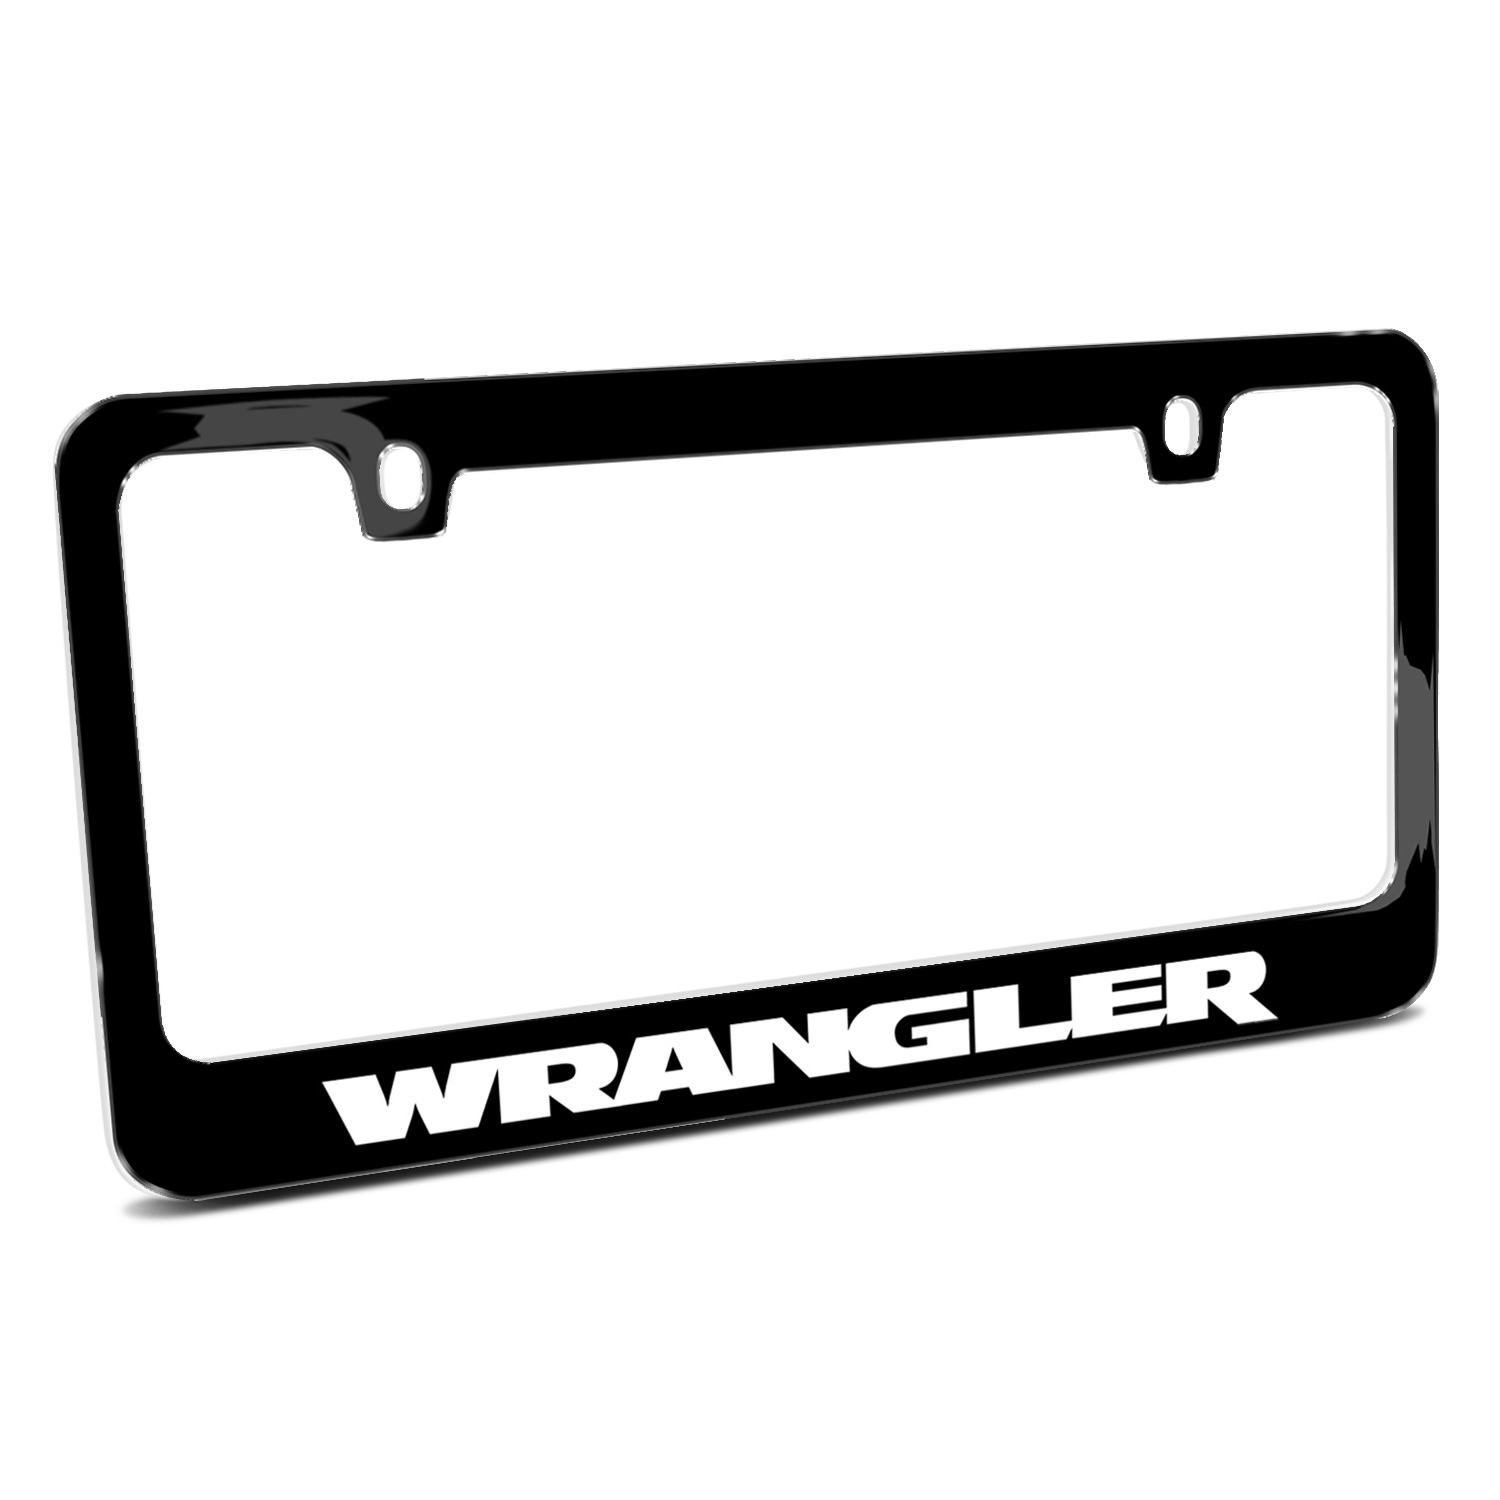 Jeep Wrangler Black Metal License Plate Frame